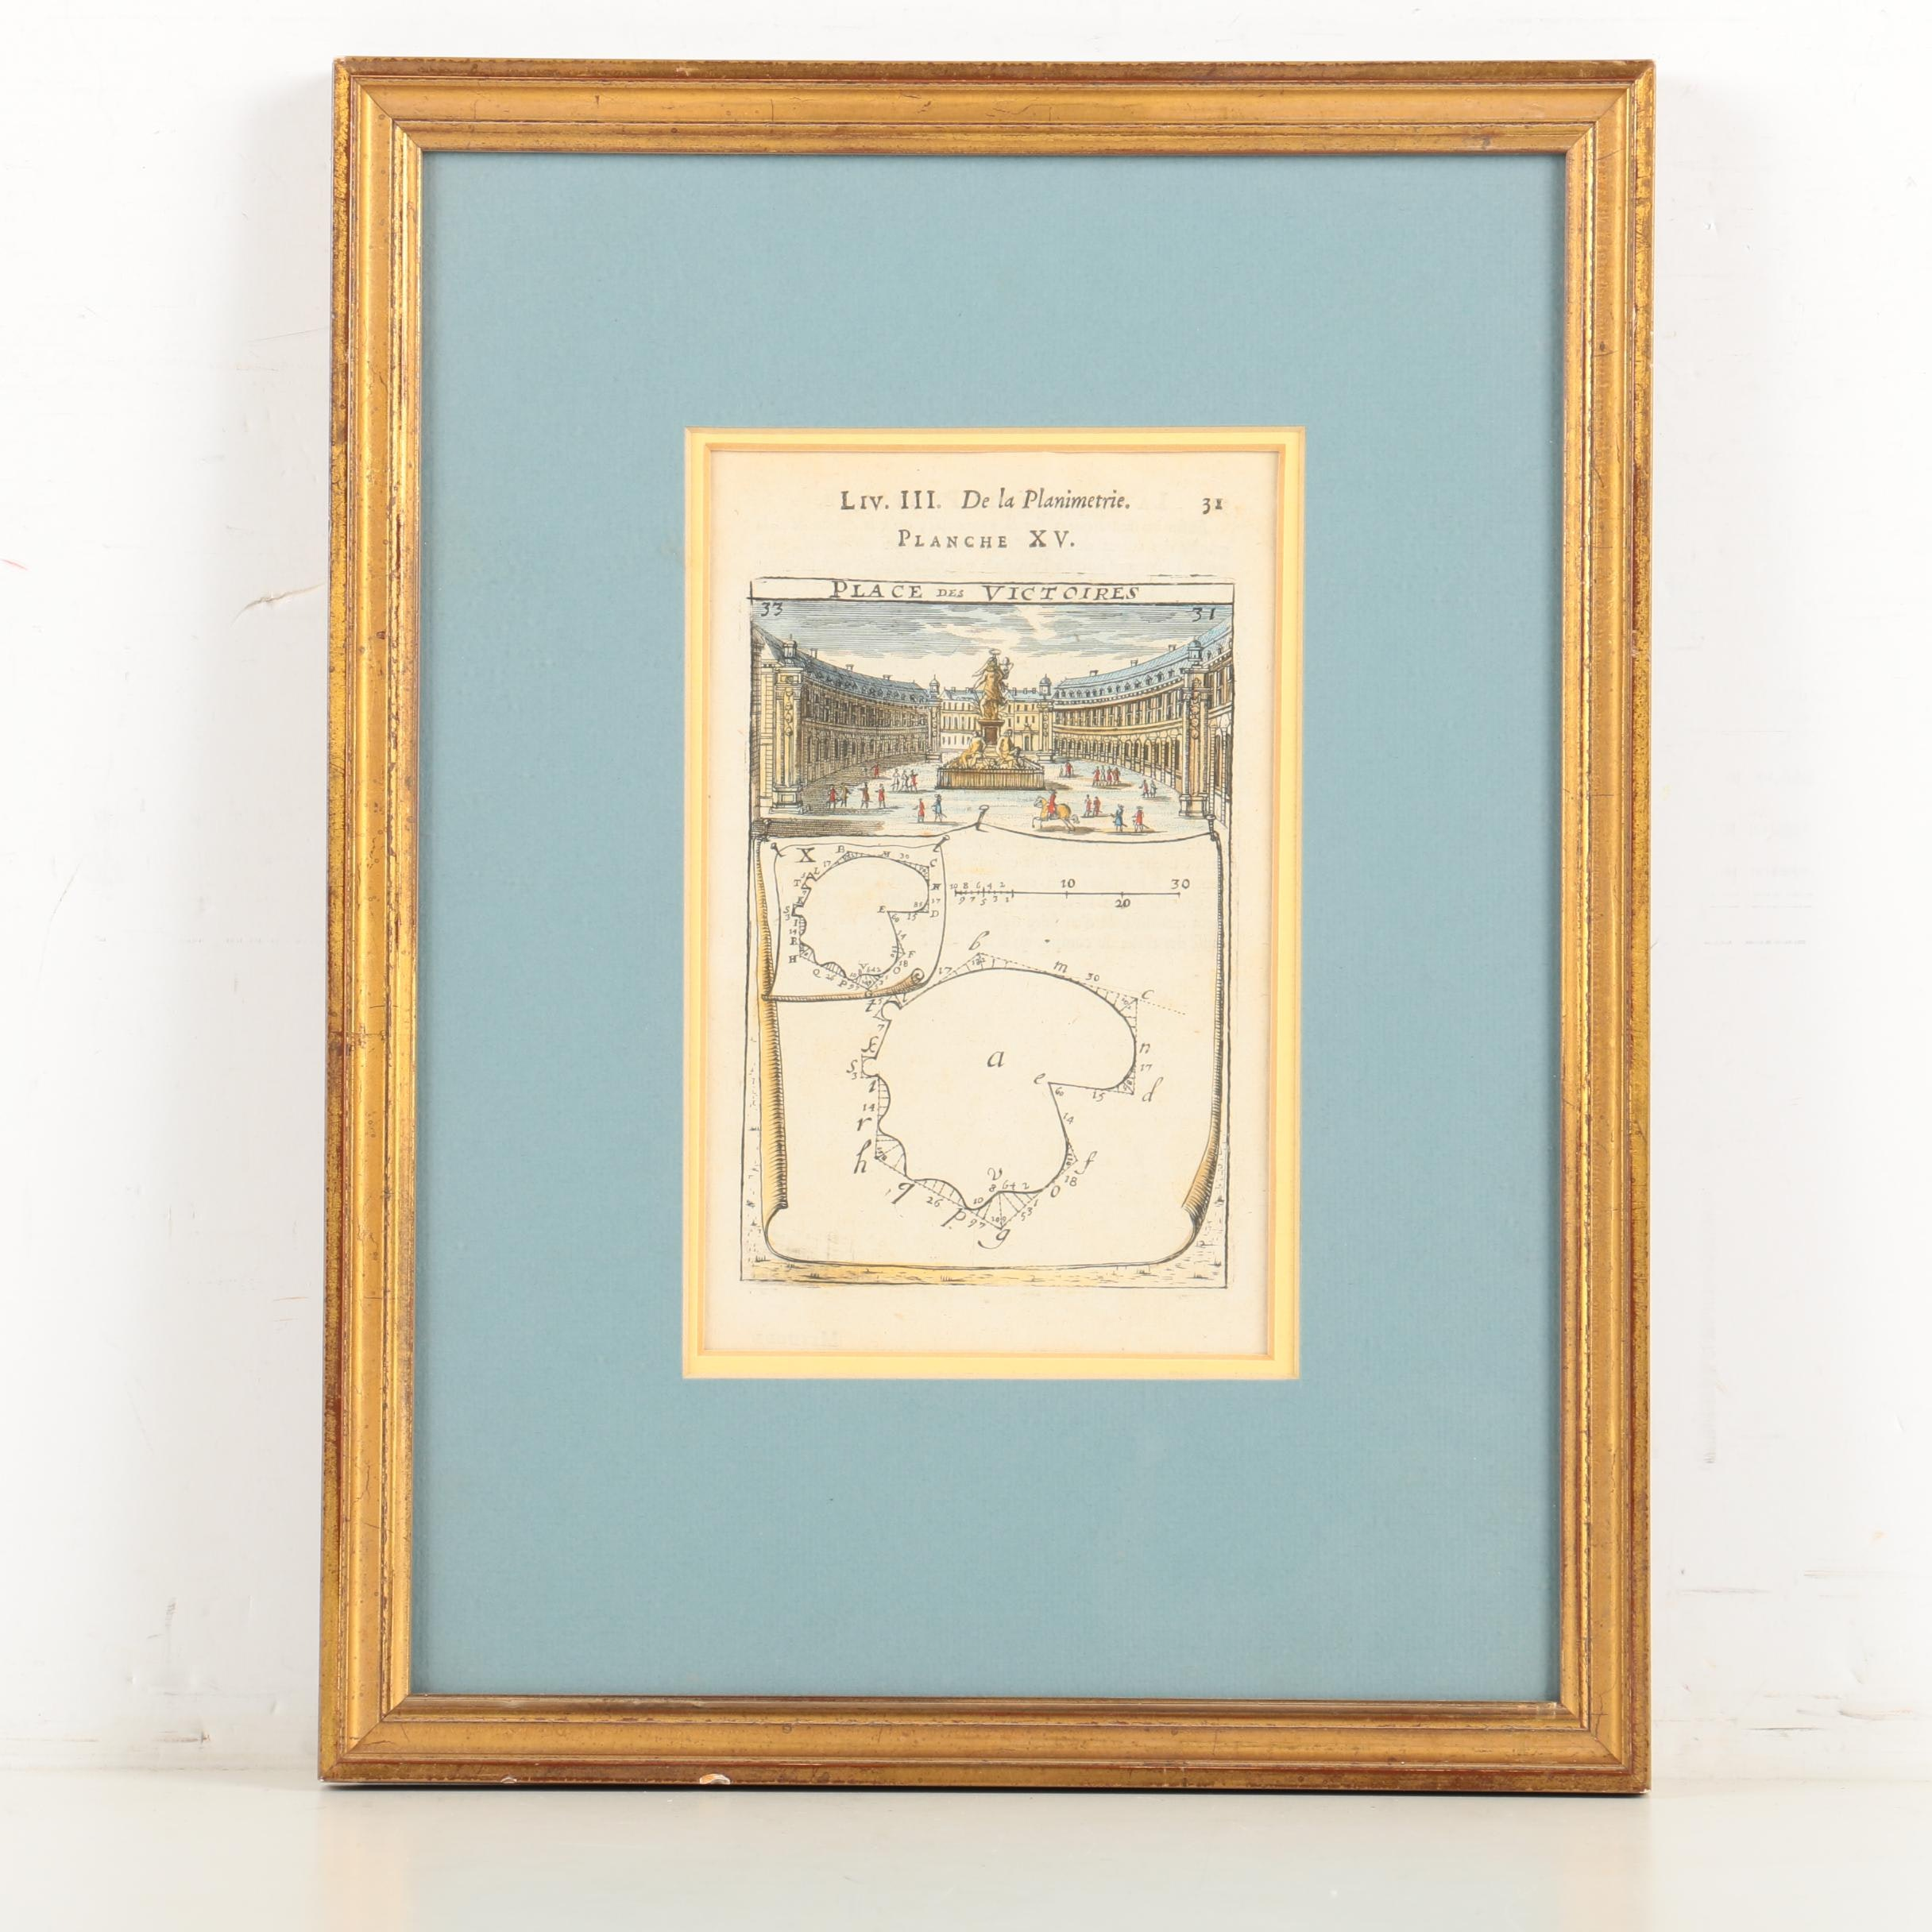 Vintage Hand Colored Engraving on Paper of Place des Victoires